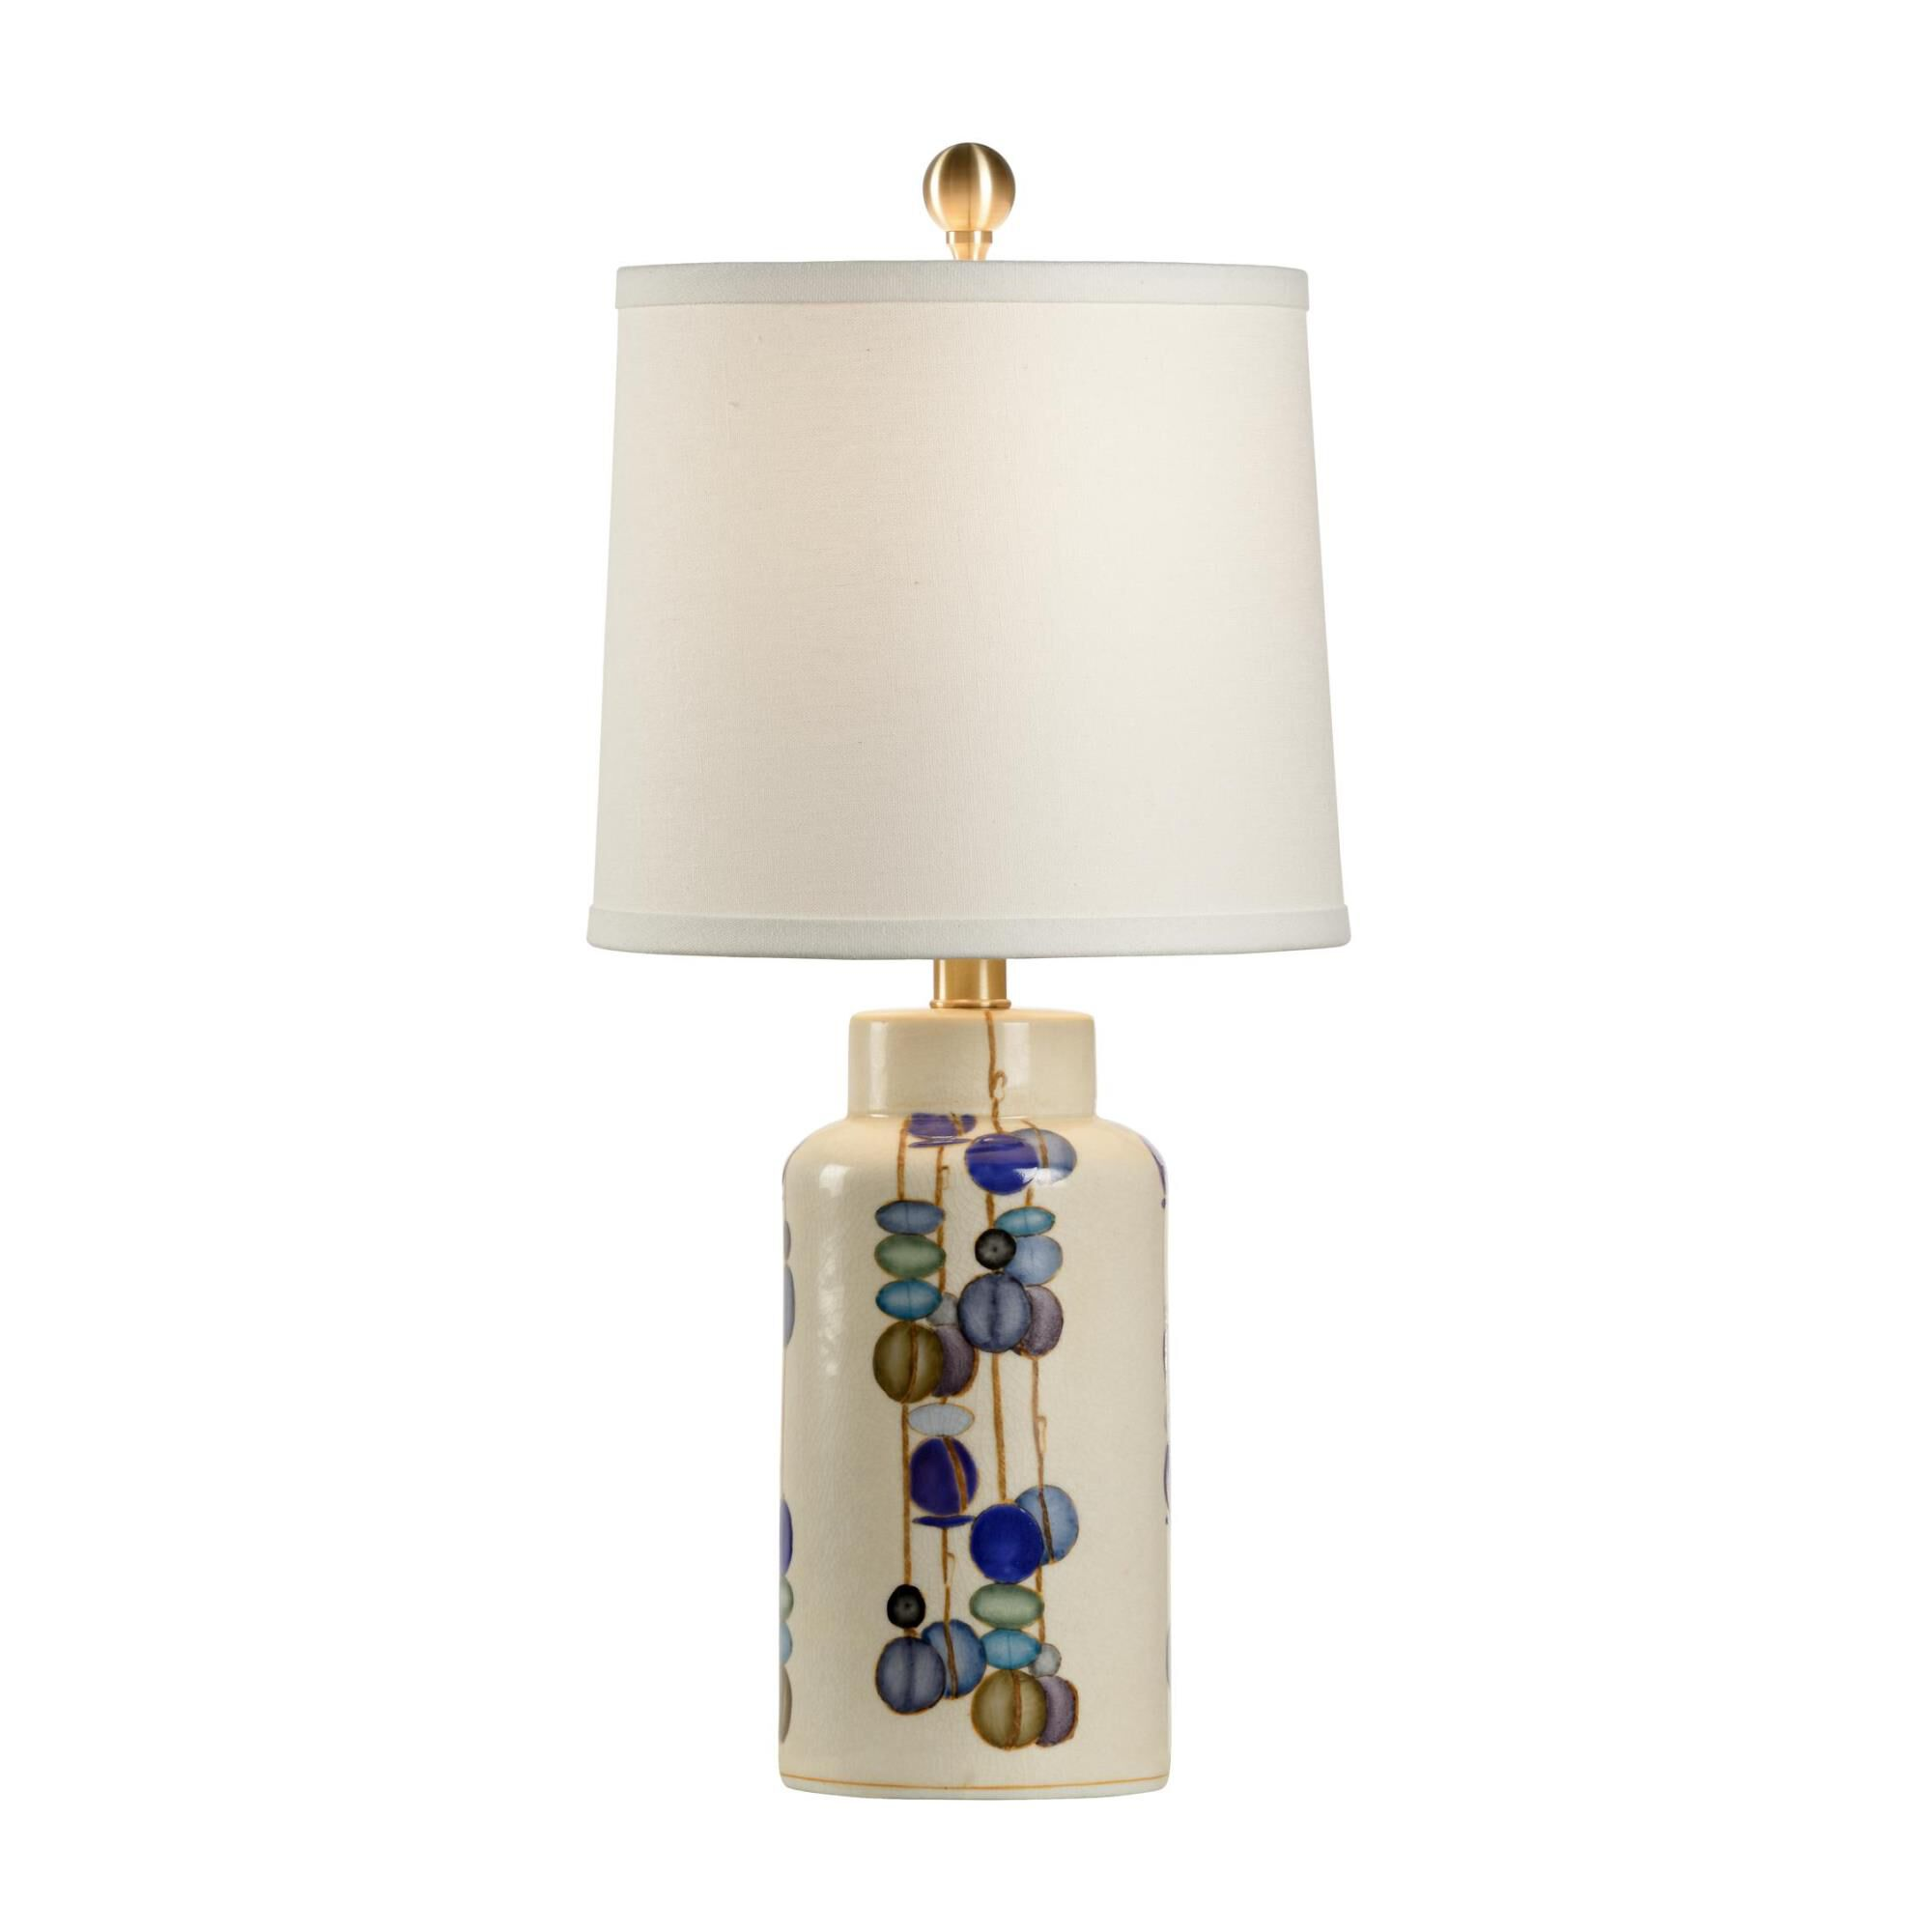 Chelsea House Kobe Table Lamp Kobe - 69313 Table Lamp